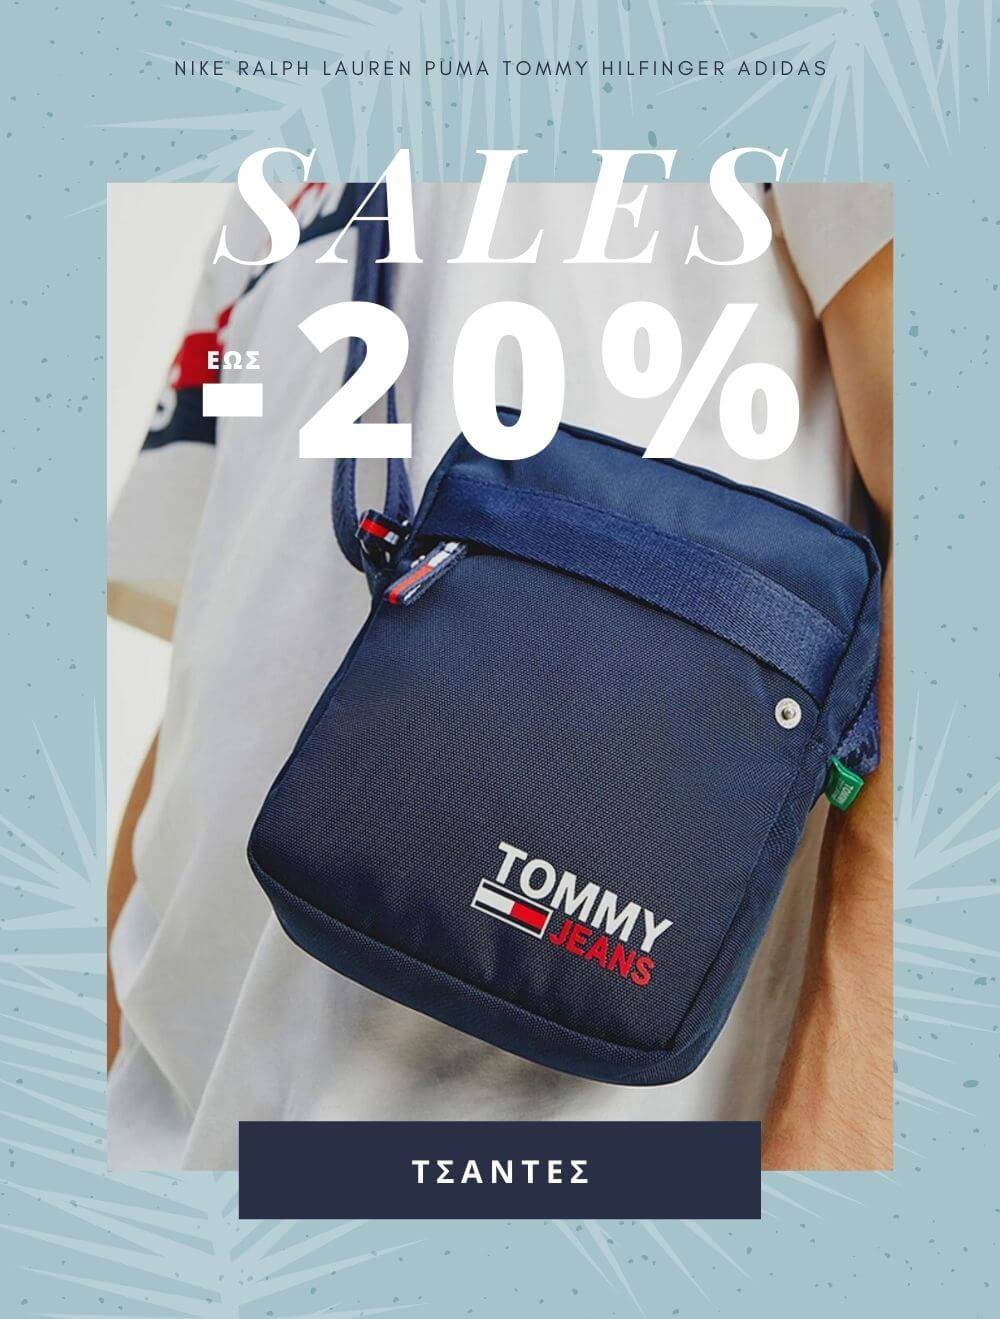 summer sales bags up to -20%